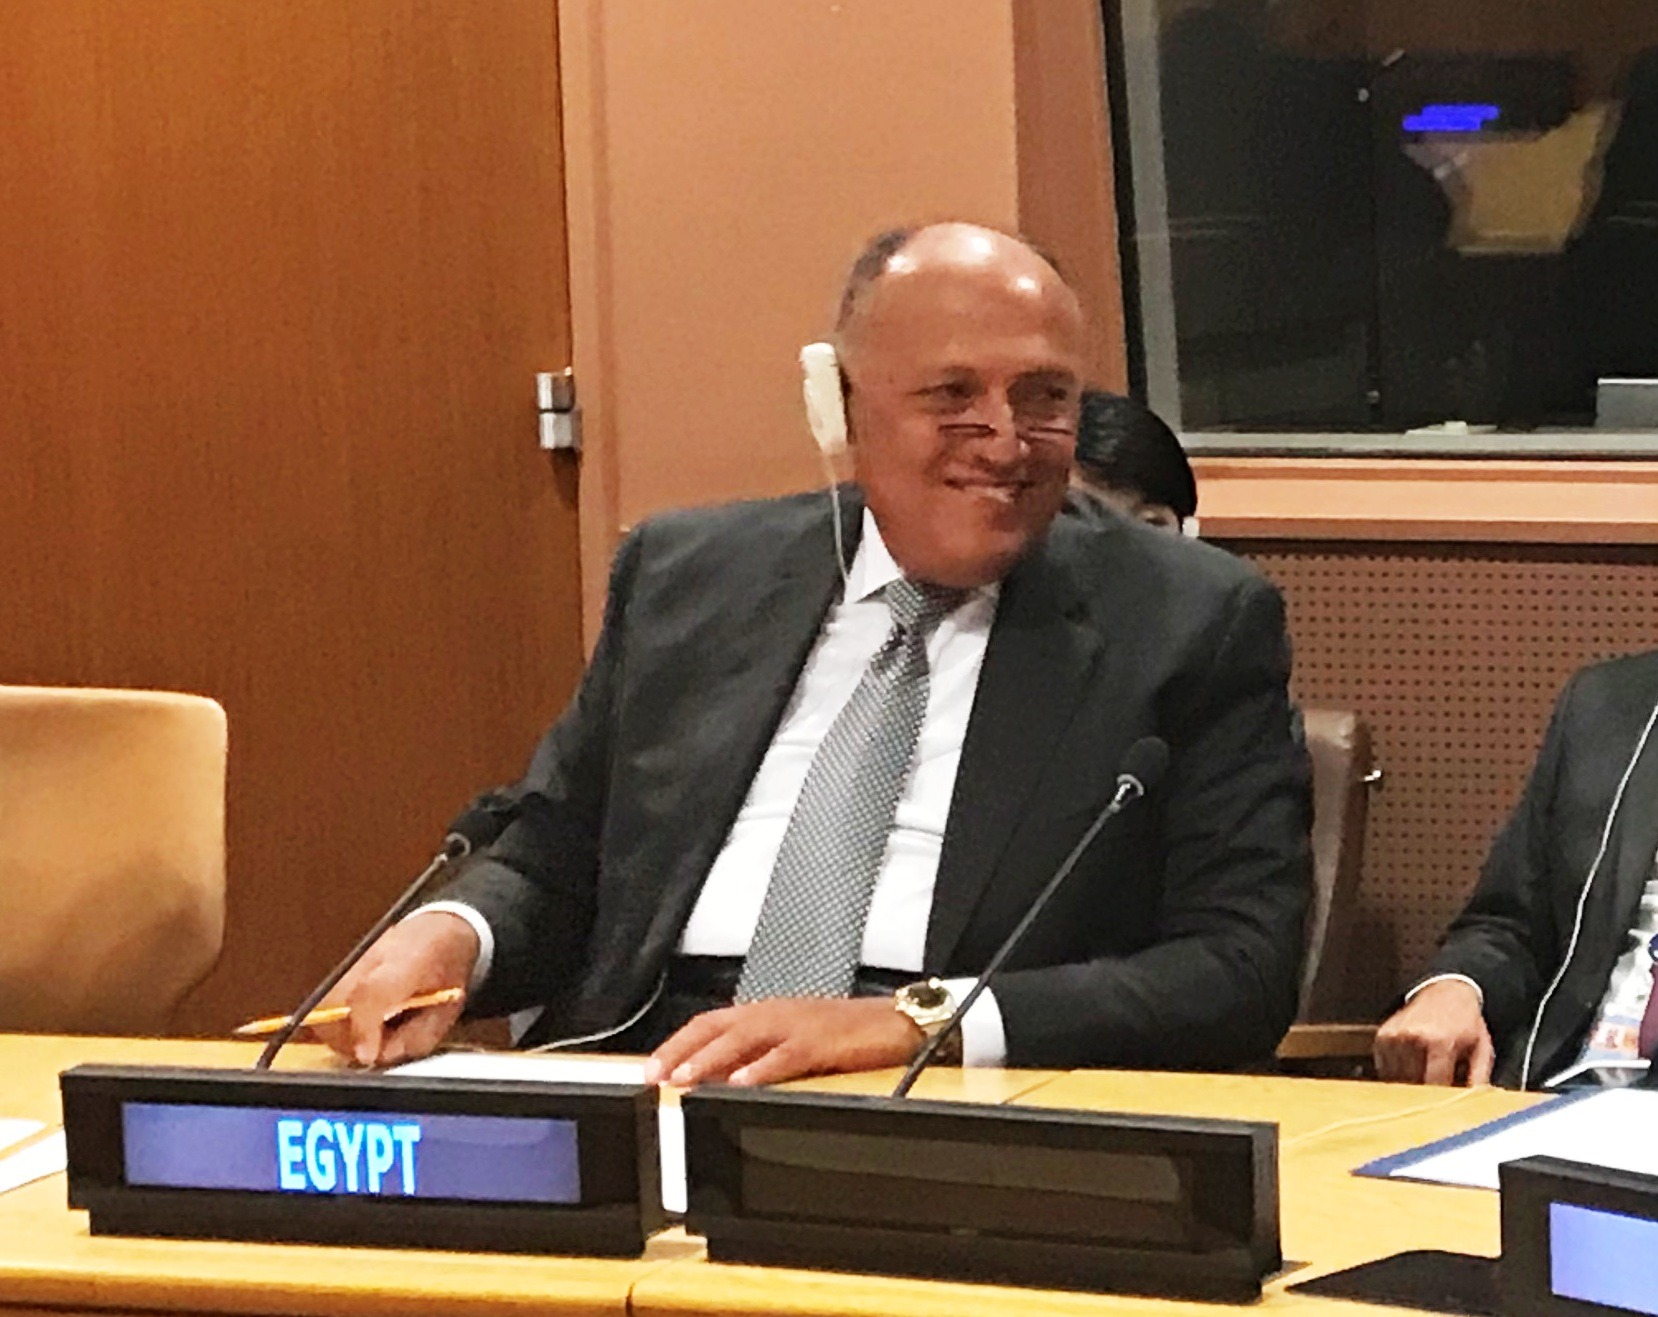 Shoukry: The Ancient Civilizations Forum consciousness of the principles of ancient heritage